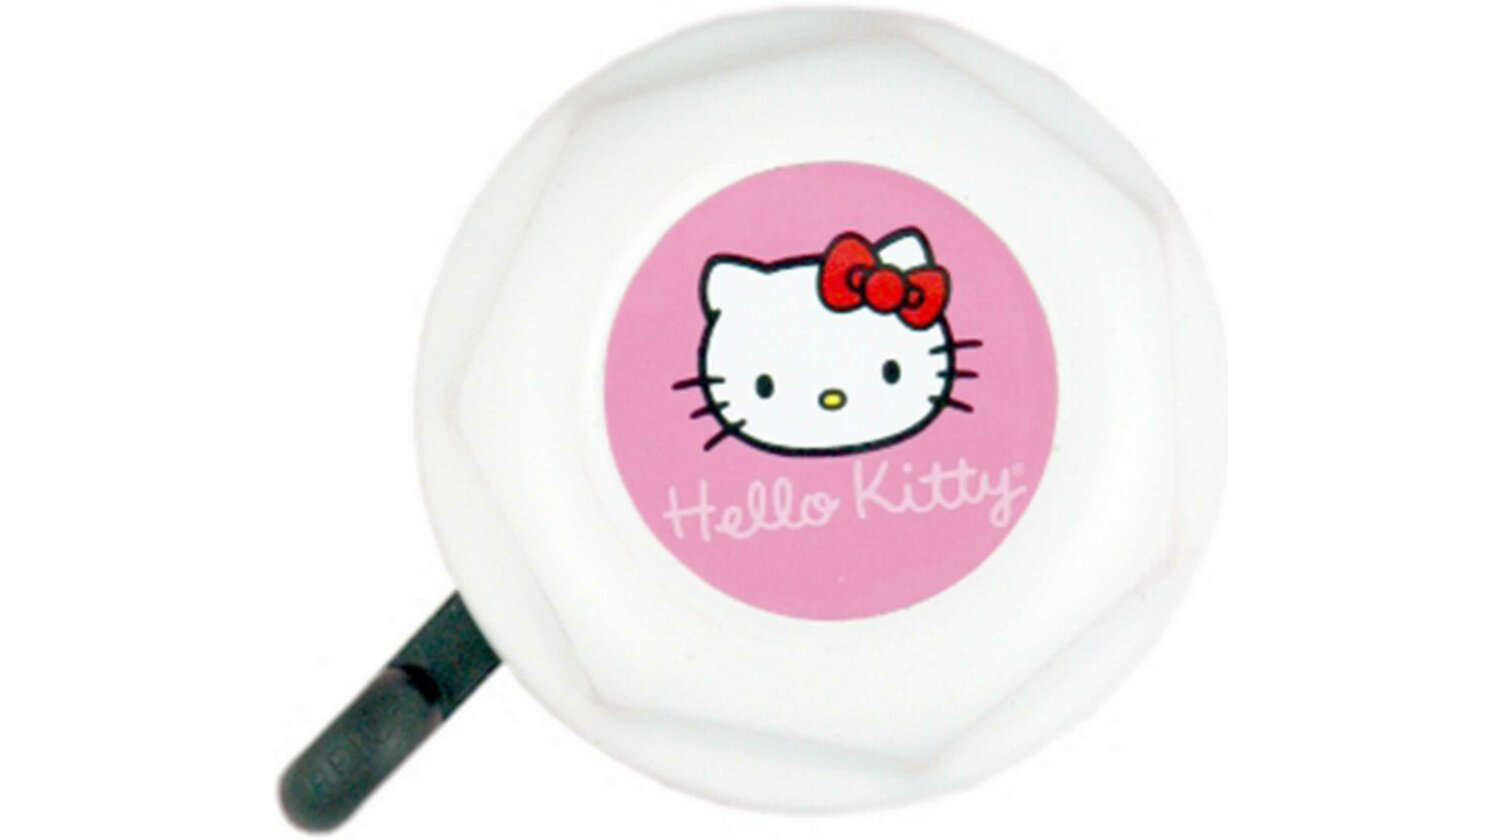 TAQ-33 Hello Kitty Klingel